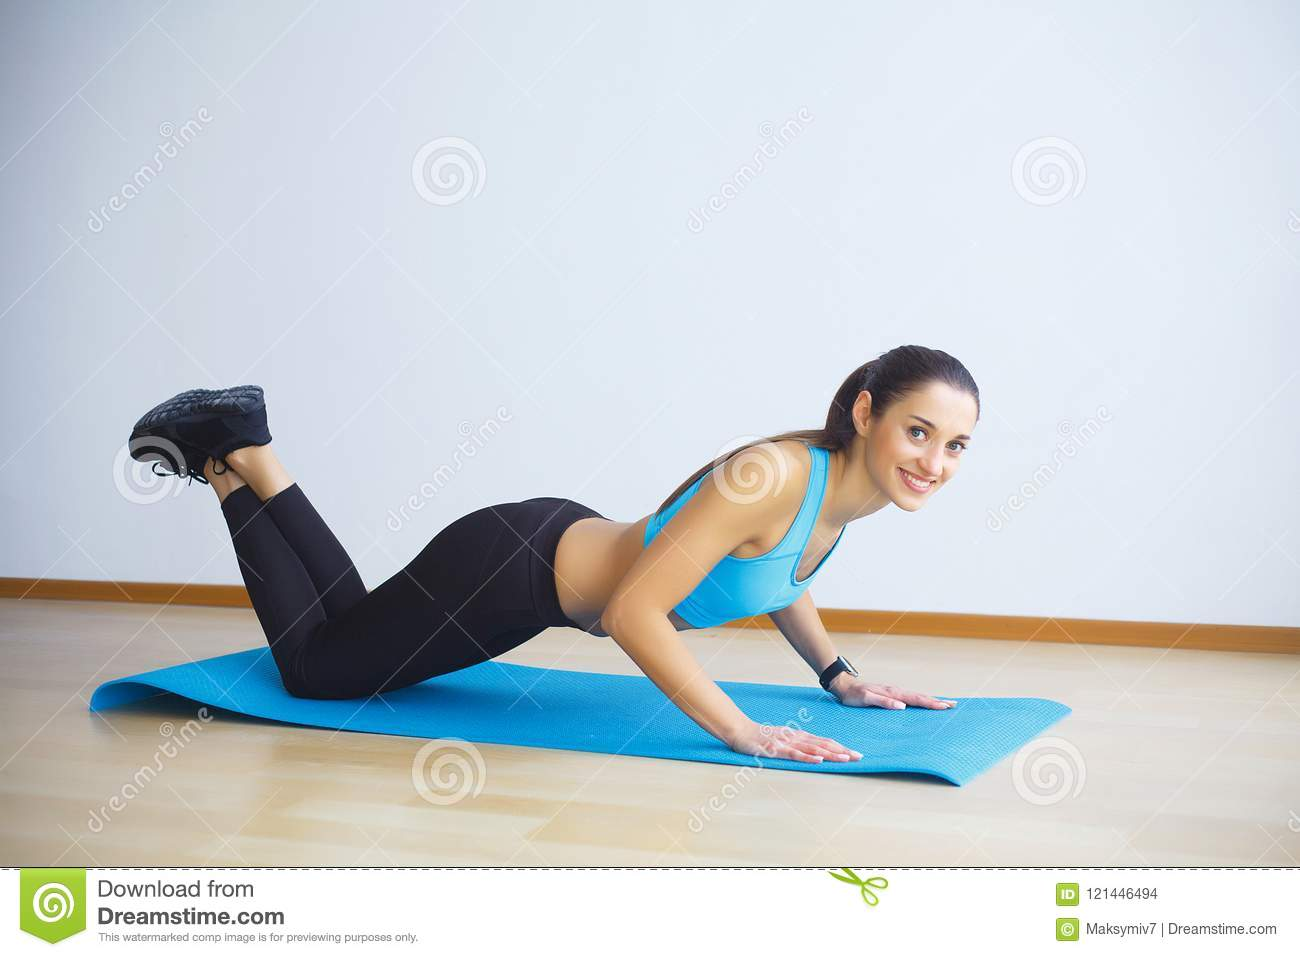 Side view of fit woman doing plank core exercise